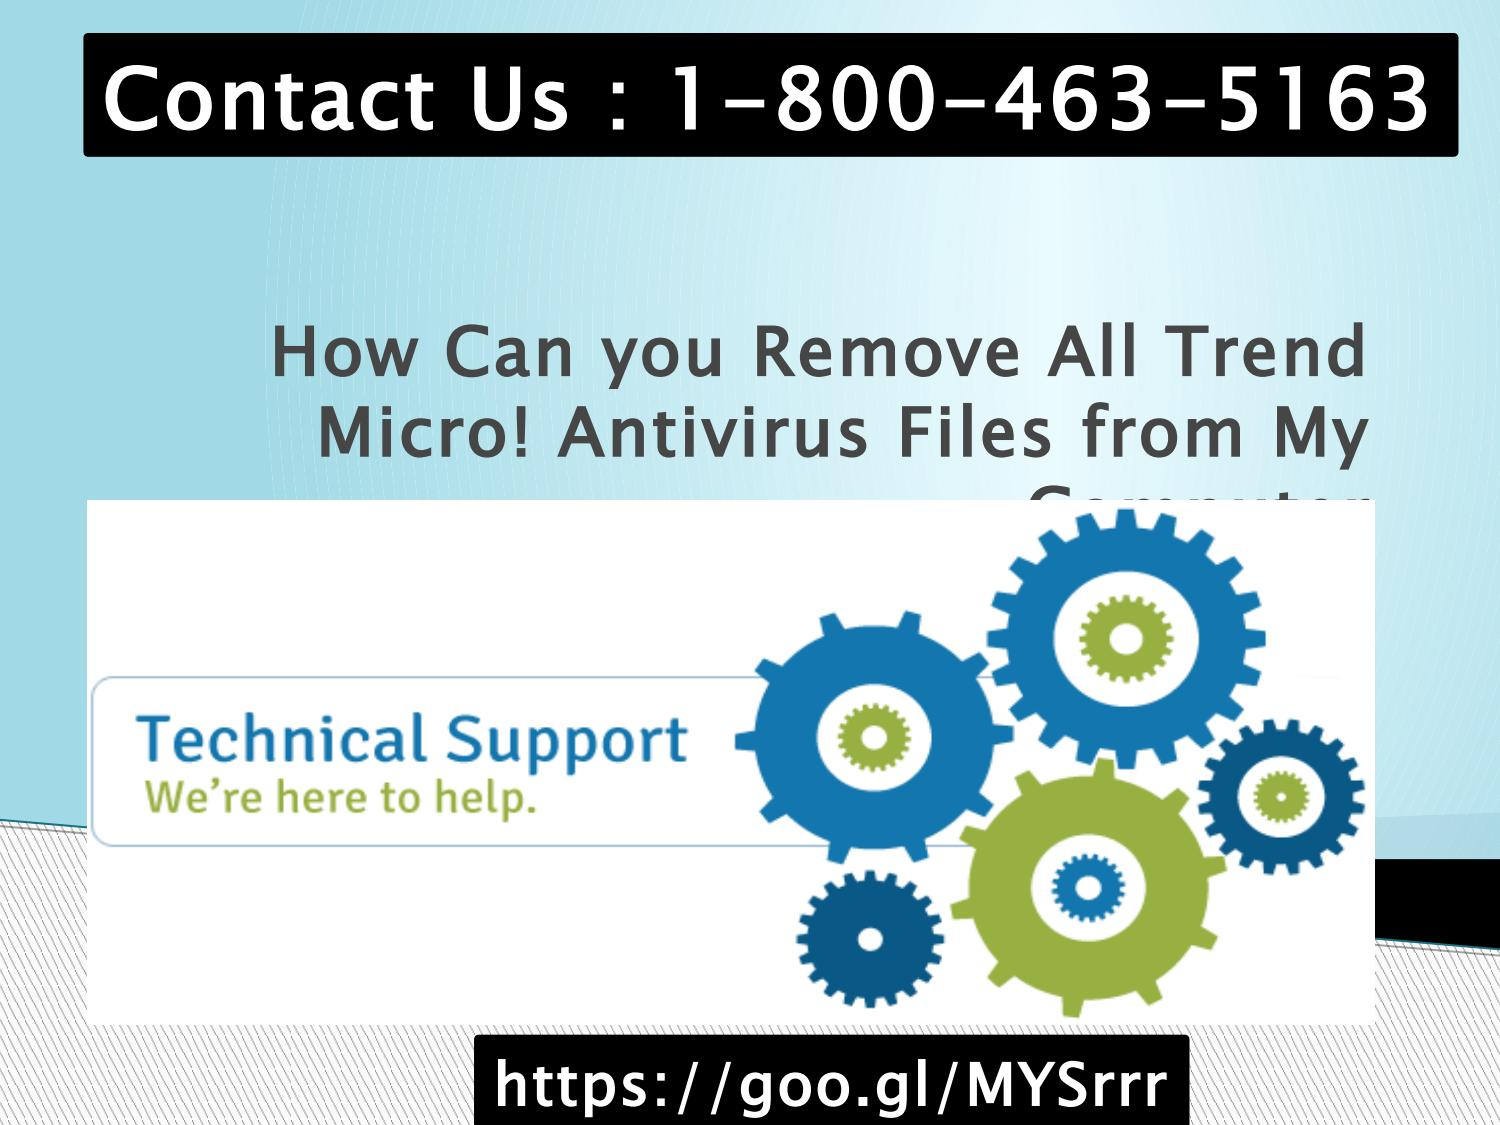 Trend Micro Antivirus free download | Technical Support | 1-800-463